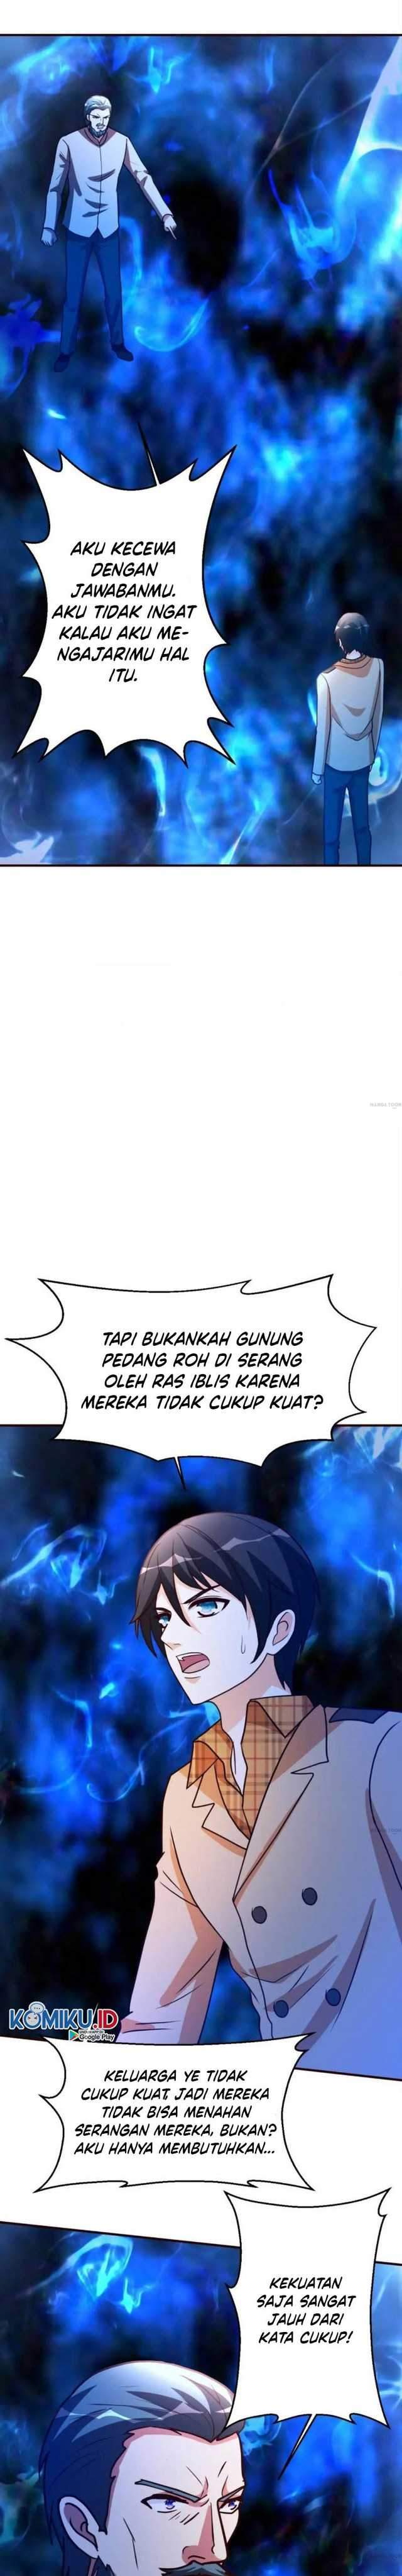 Urban Leveling Chapter 134